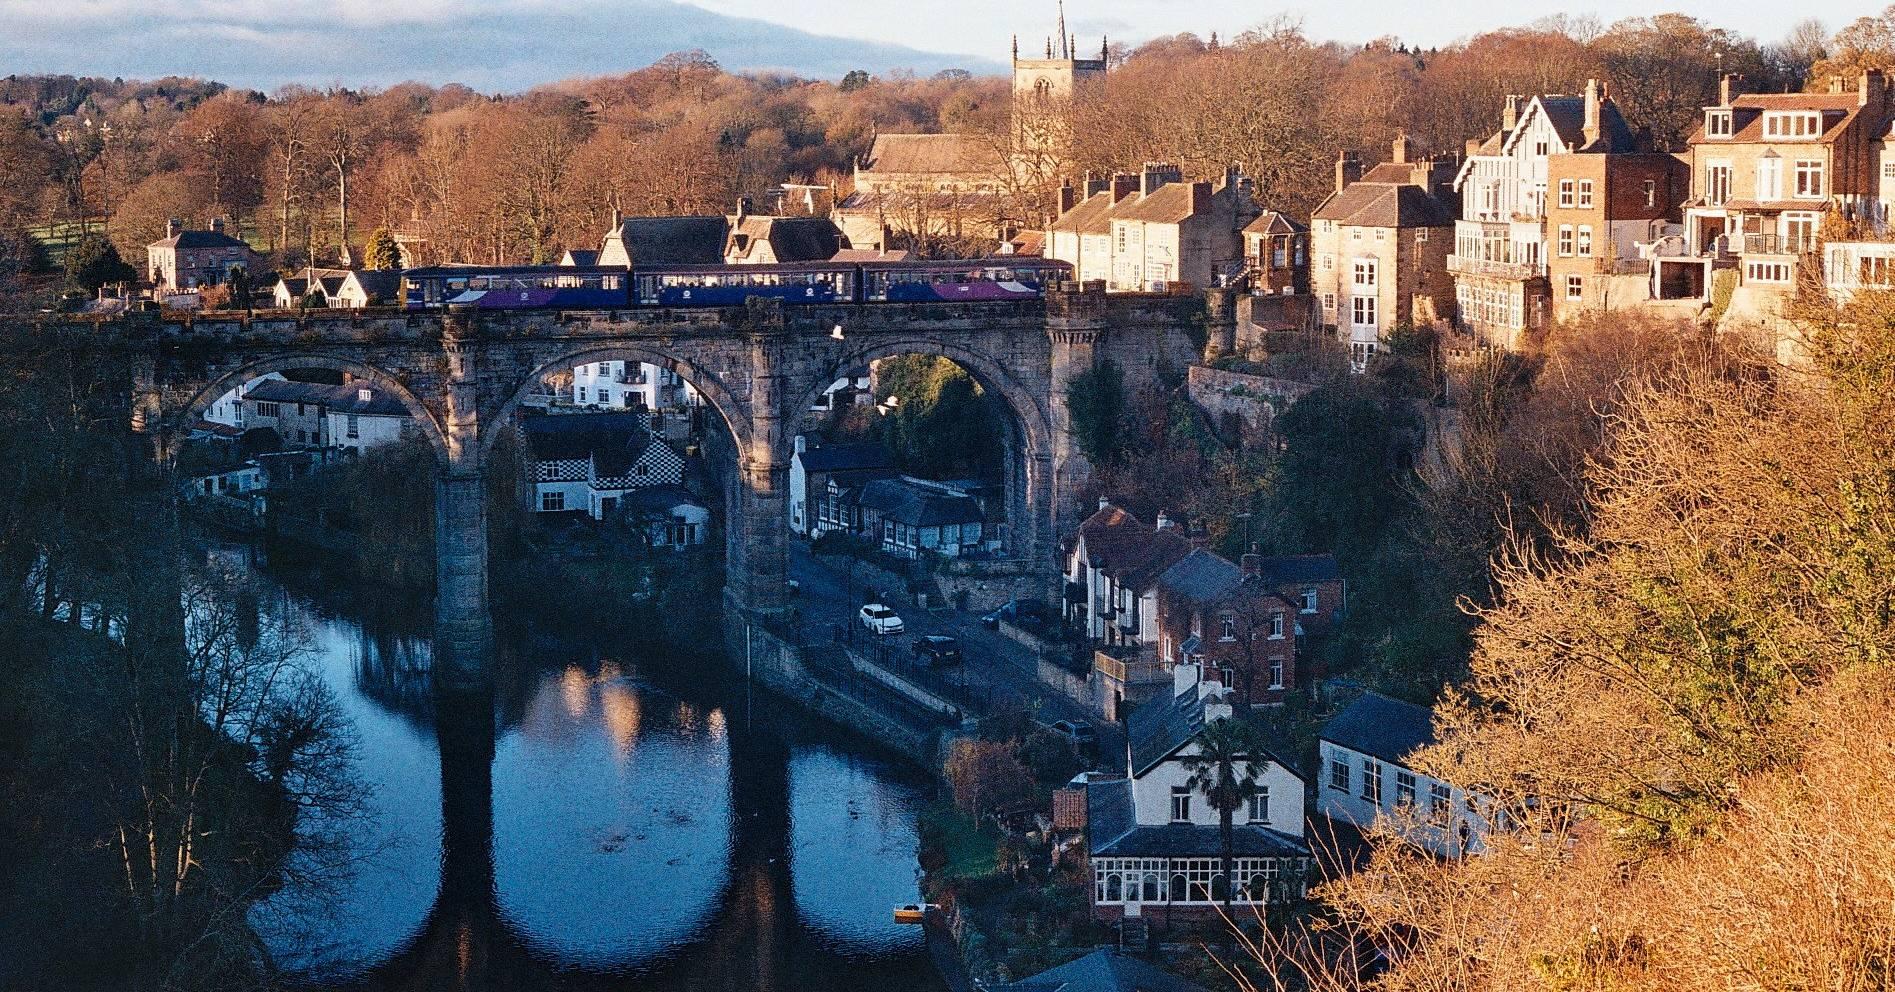 River Nidd fails water pollution tests due to raw sewage